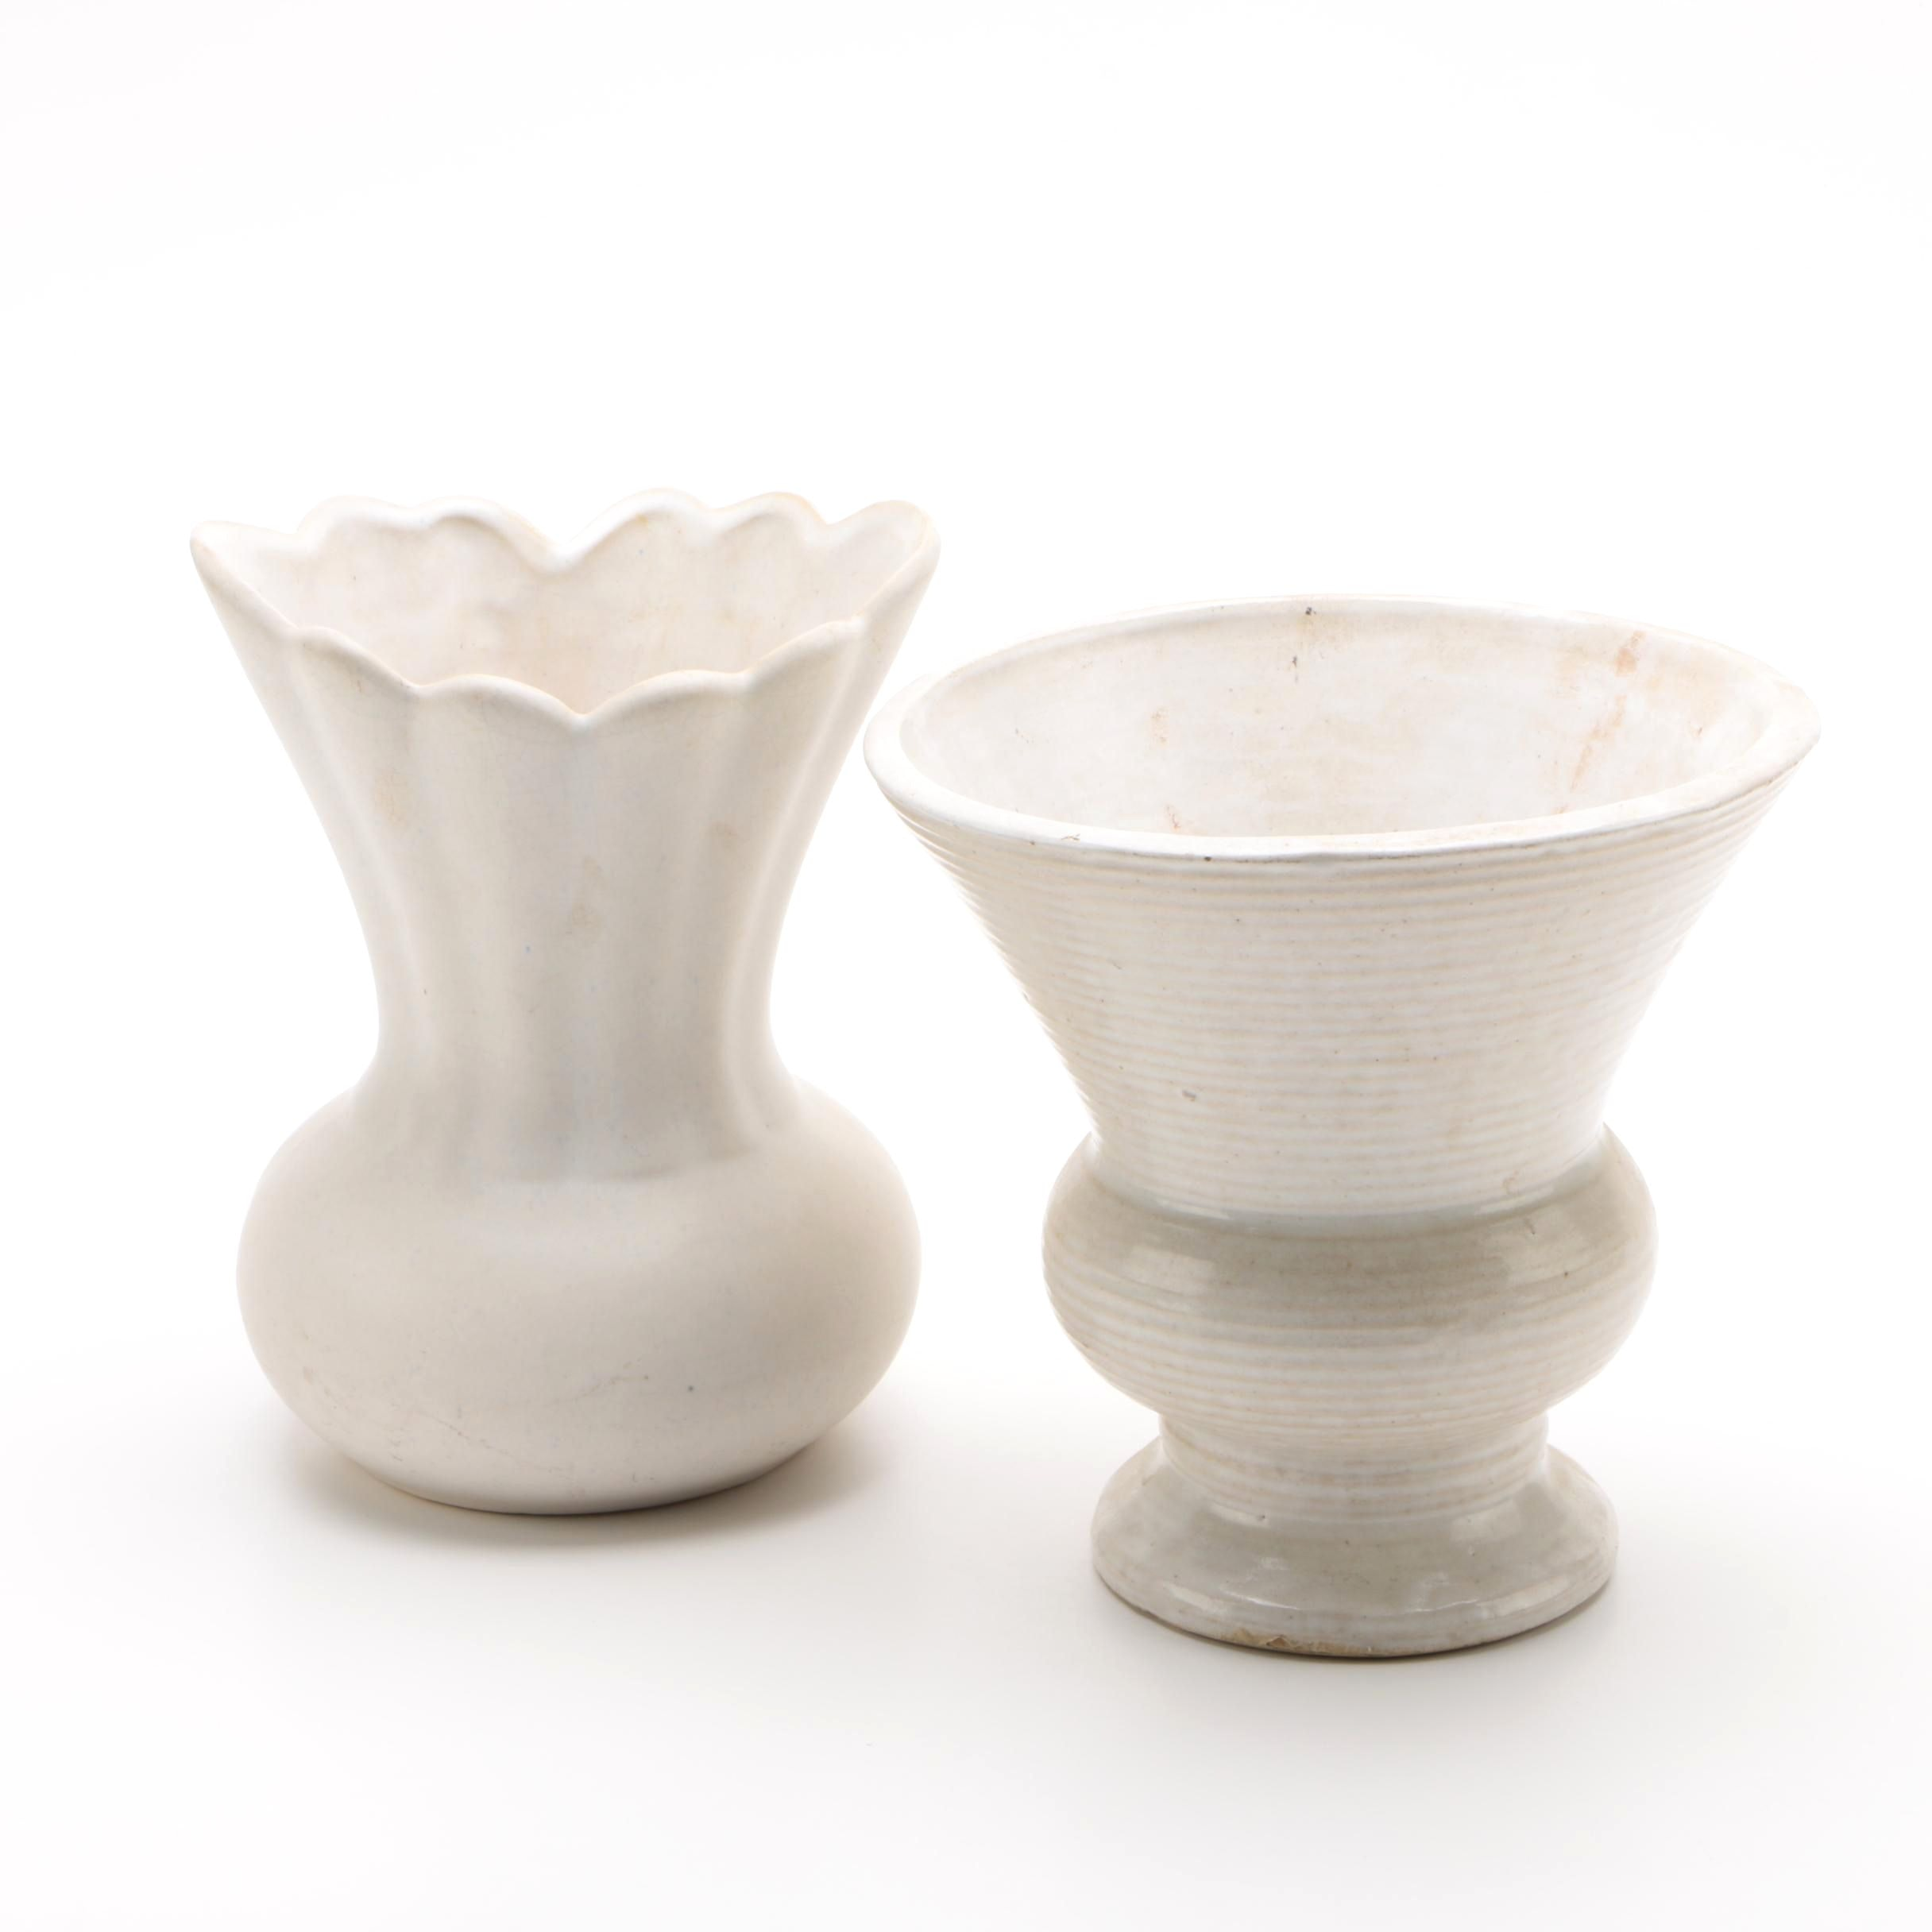 Ceramic Pottery Vase and Planter